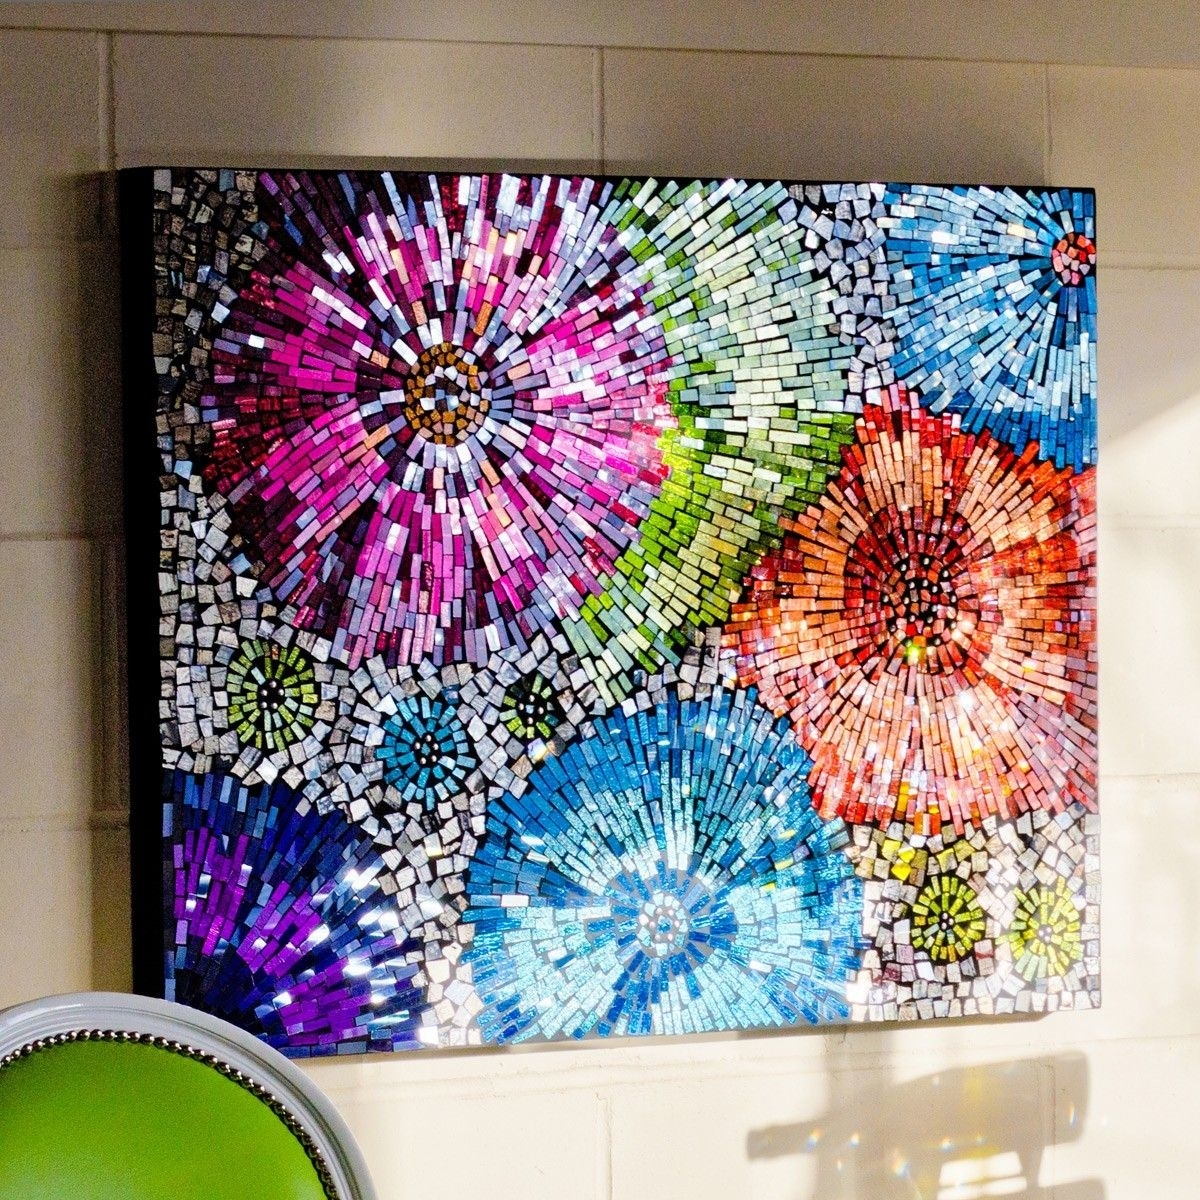 Mosaic Flower Wall | Mosaic | Pinterest | Mosaic Wall Art, Mosaics Regarding 2017 Mosaic Wall Art (Gallery 4 of 15)